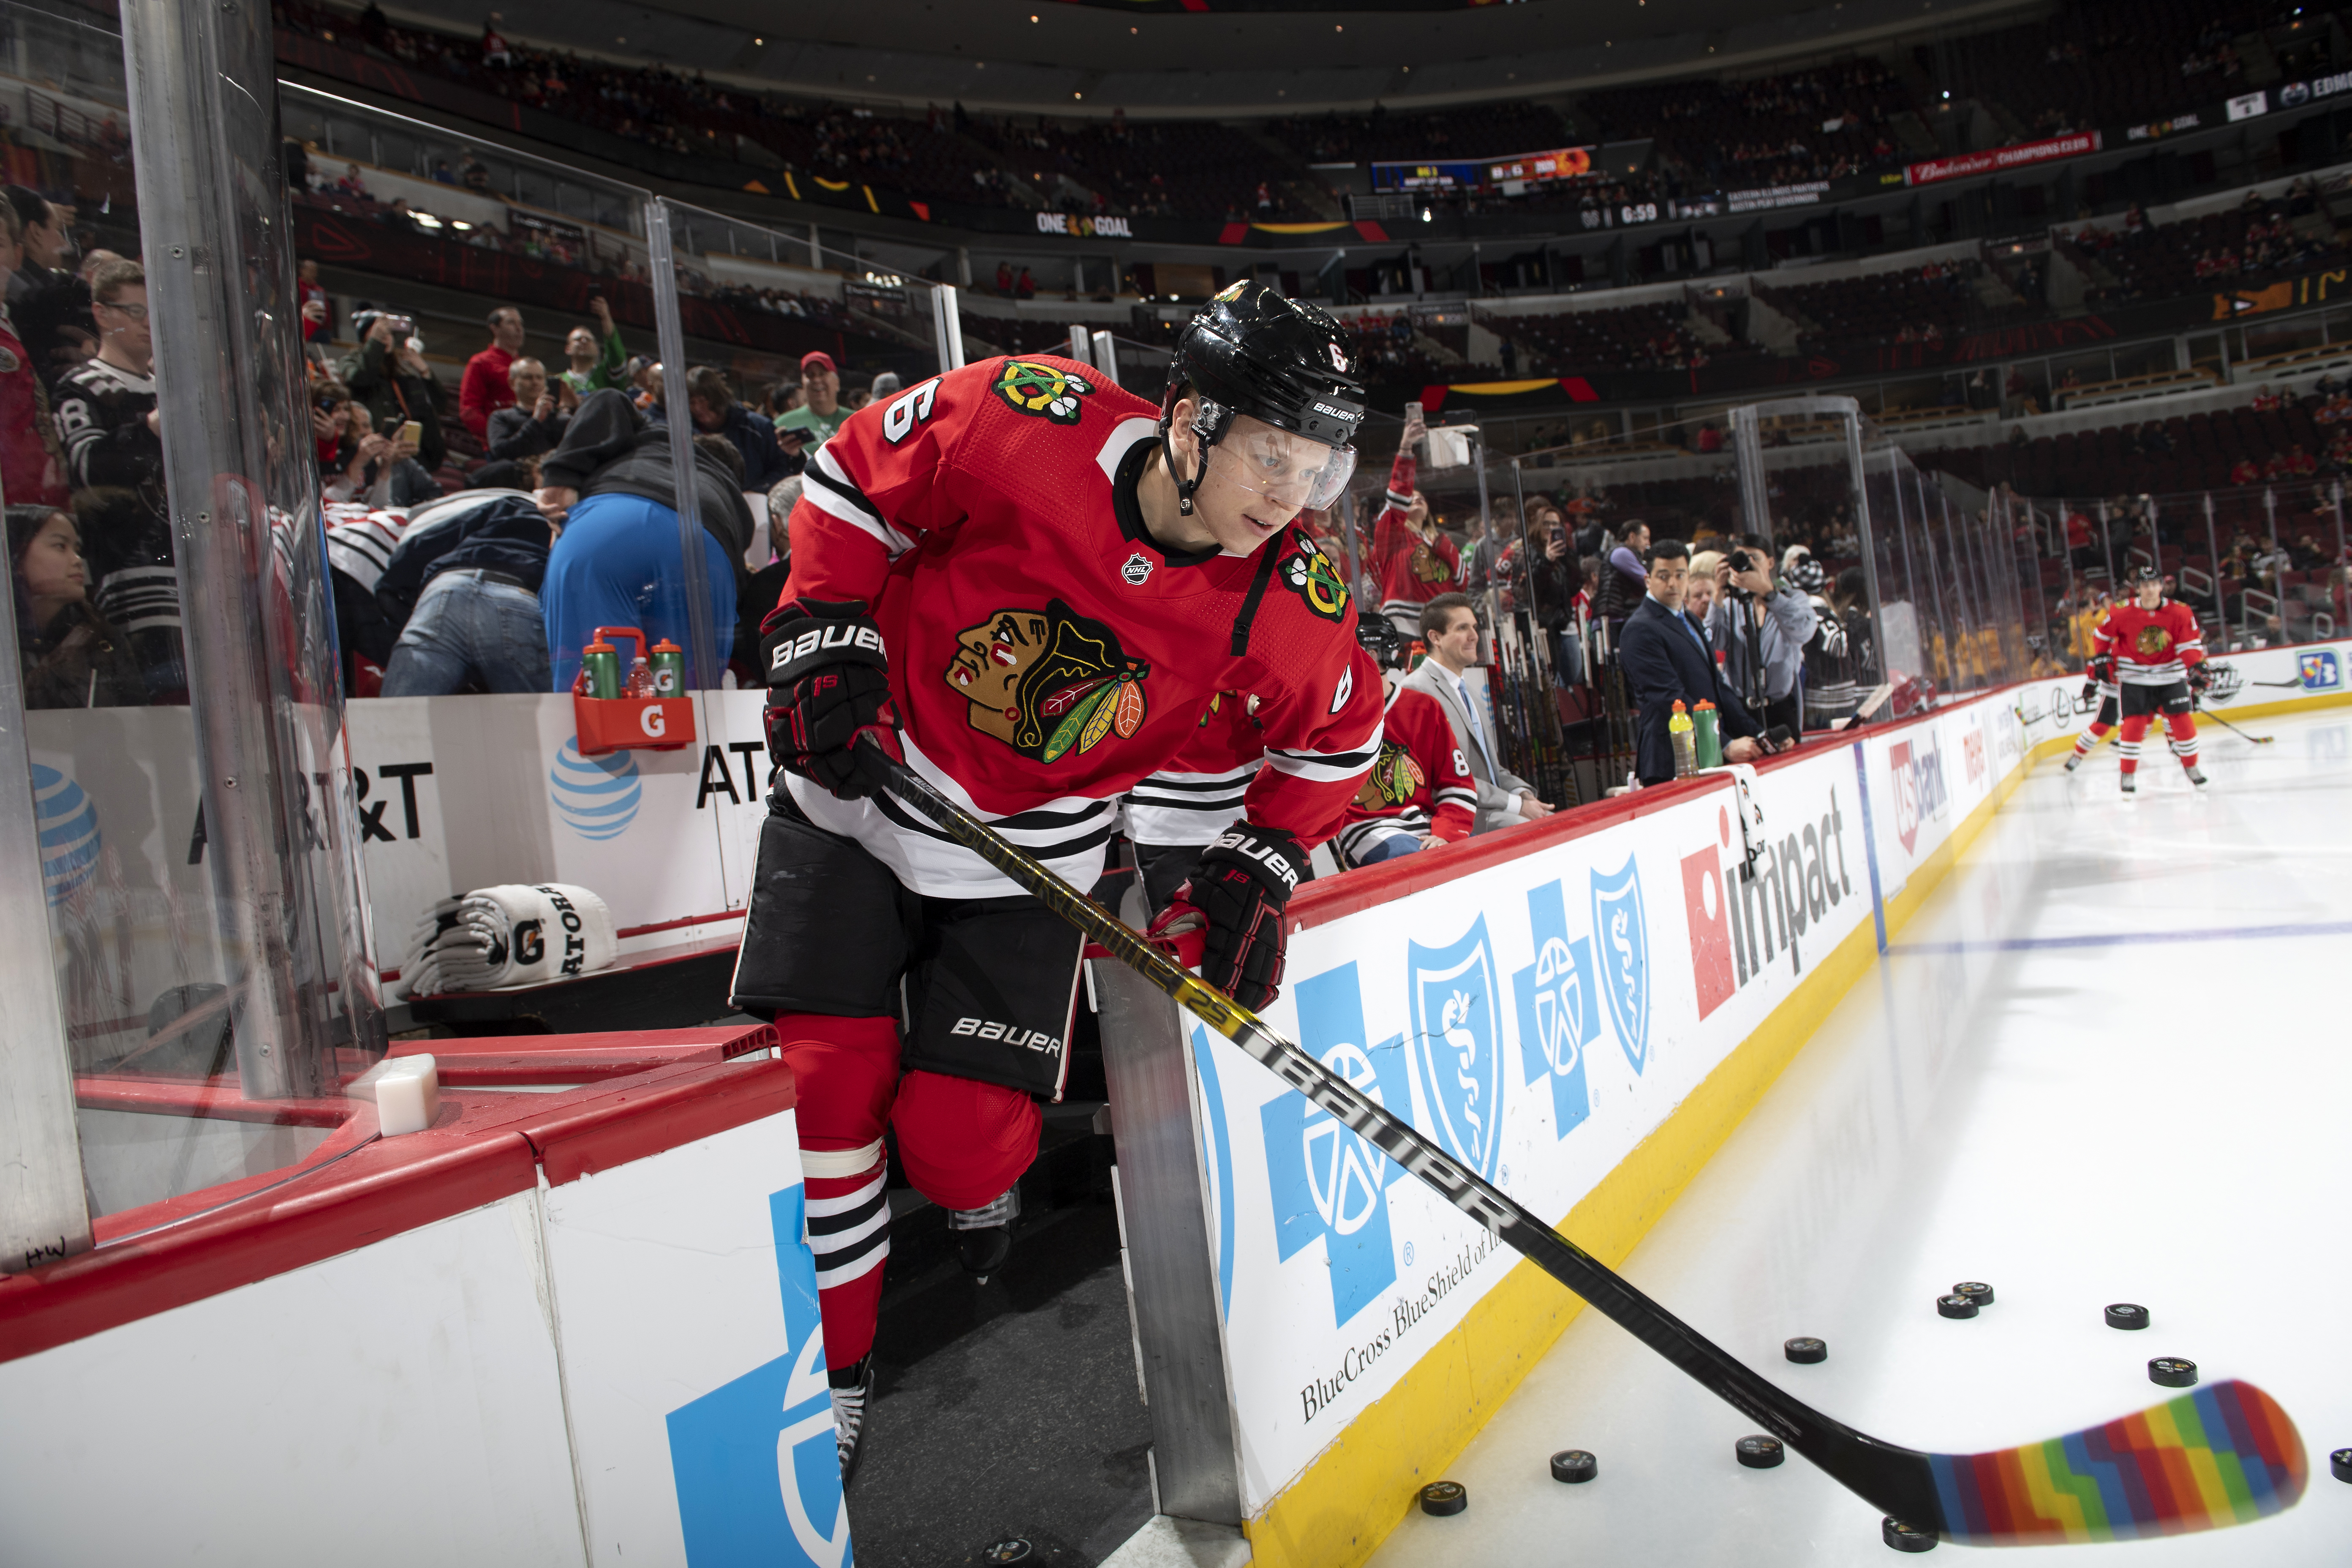 """Olli Maatta #6 of the Chicago Blackhawks uses a rainbow taped stick during warm-ups in support of the NHL's """"Hockey is for Everyone"""" initiative during Pride Night prior to the game against the Edmonton Oilers at the United Center on March 5, 2020 in Chicago, Illinois."""